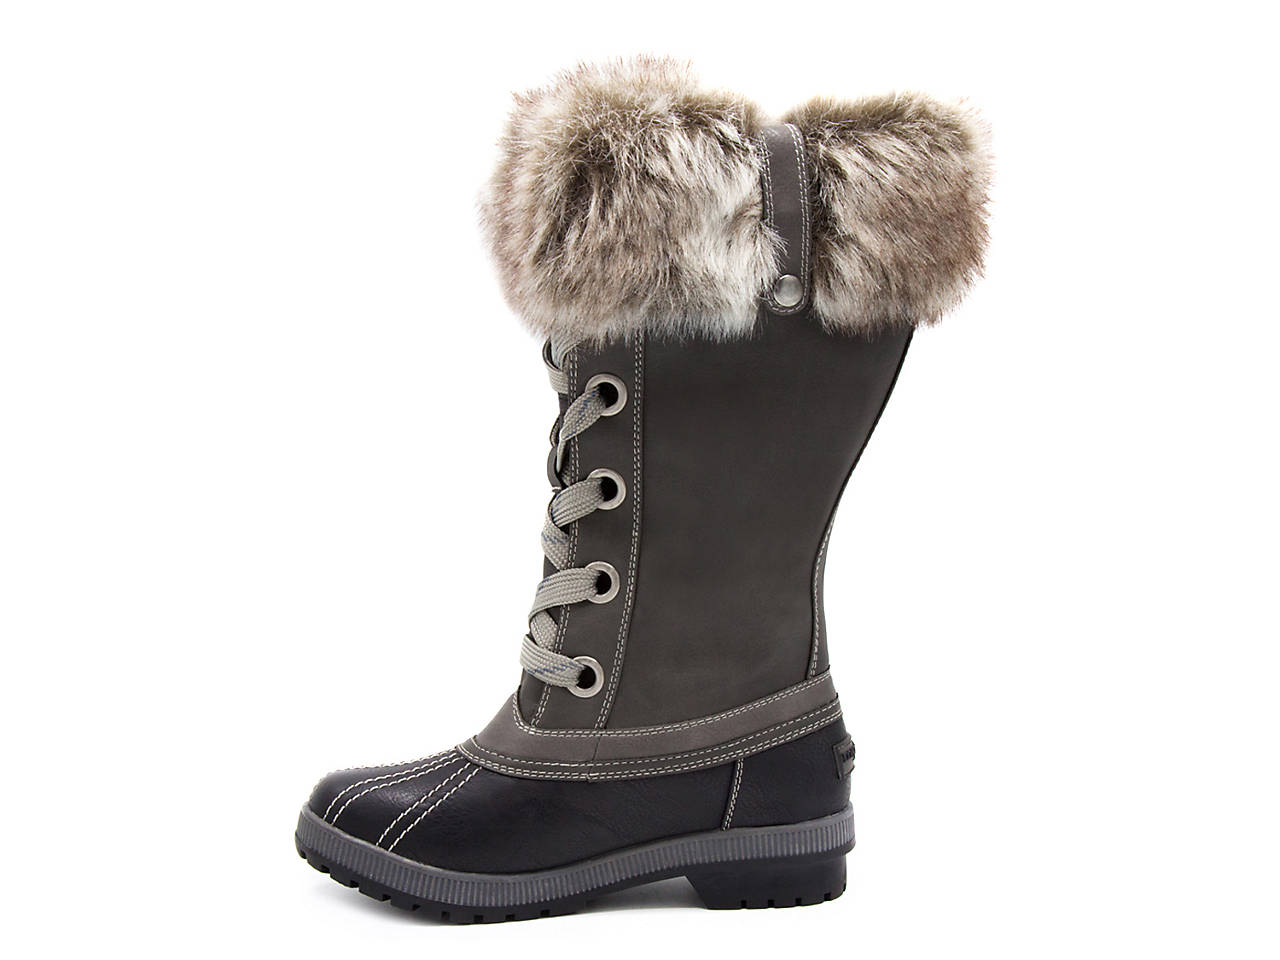 f65286711d2 London Fog Melton 2 Snow Boot Women s Shoes